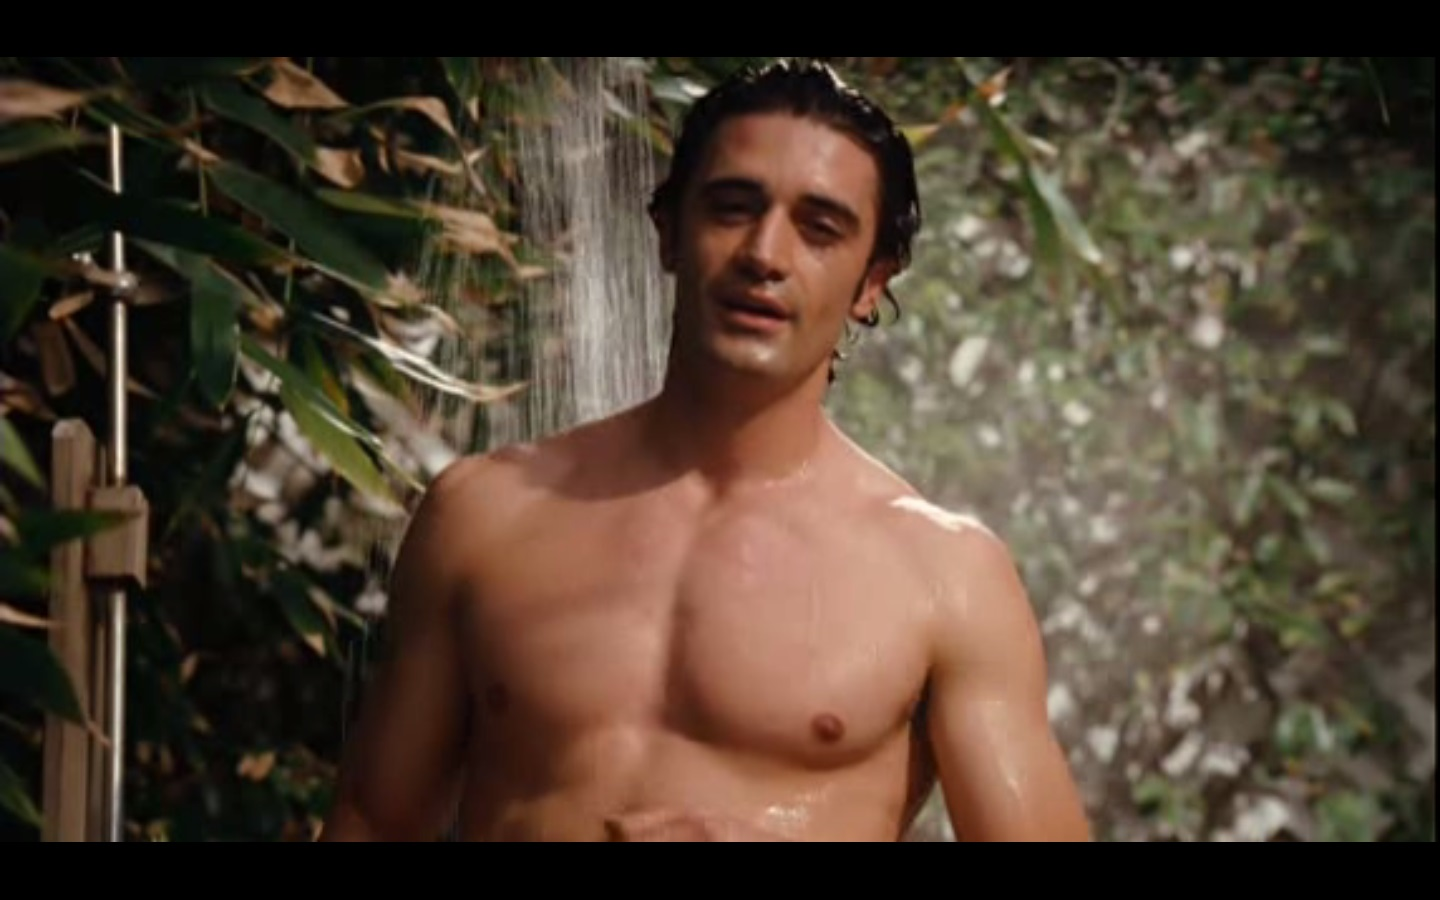 Gilles Marini full frontal shower scene - Pornhubcom